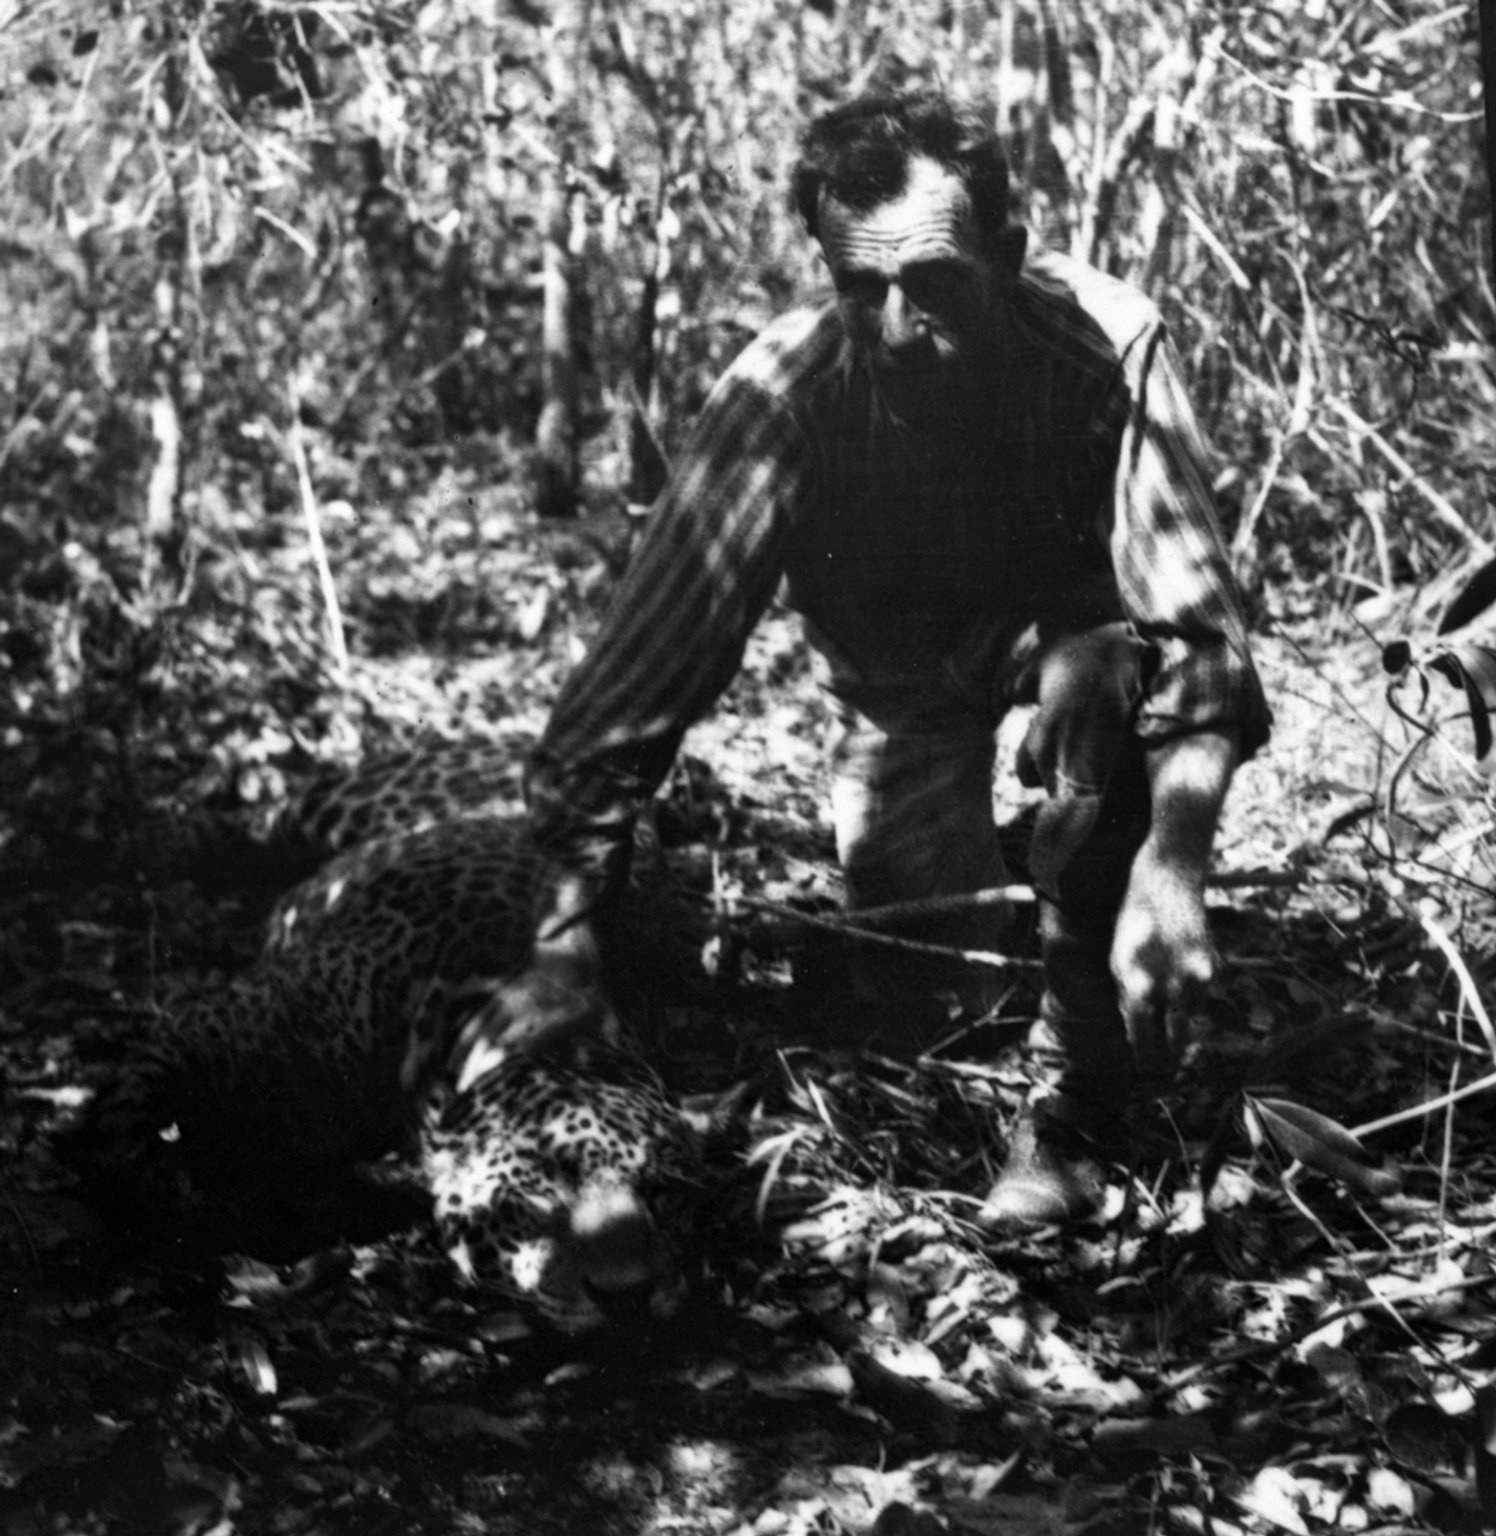 Miller squatting over the body of a jaguar